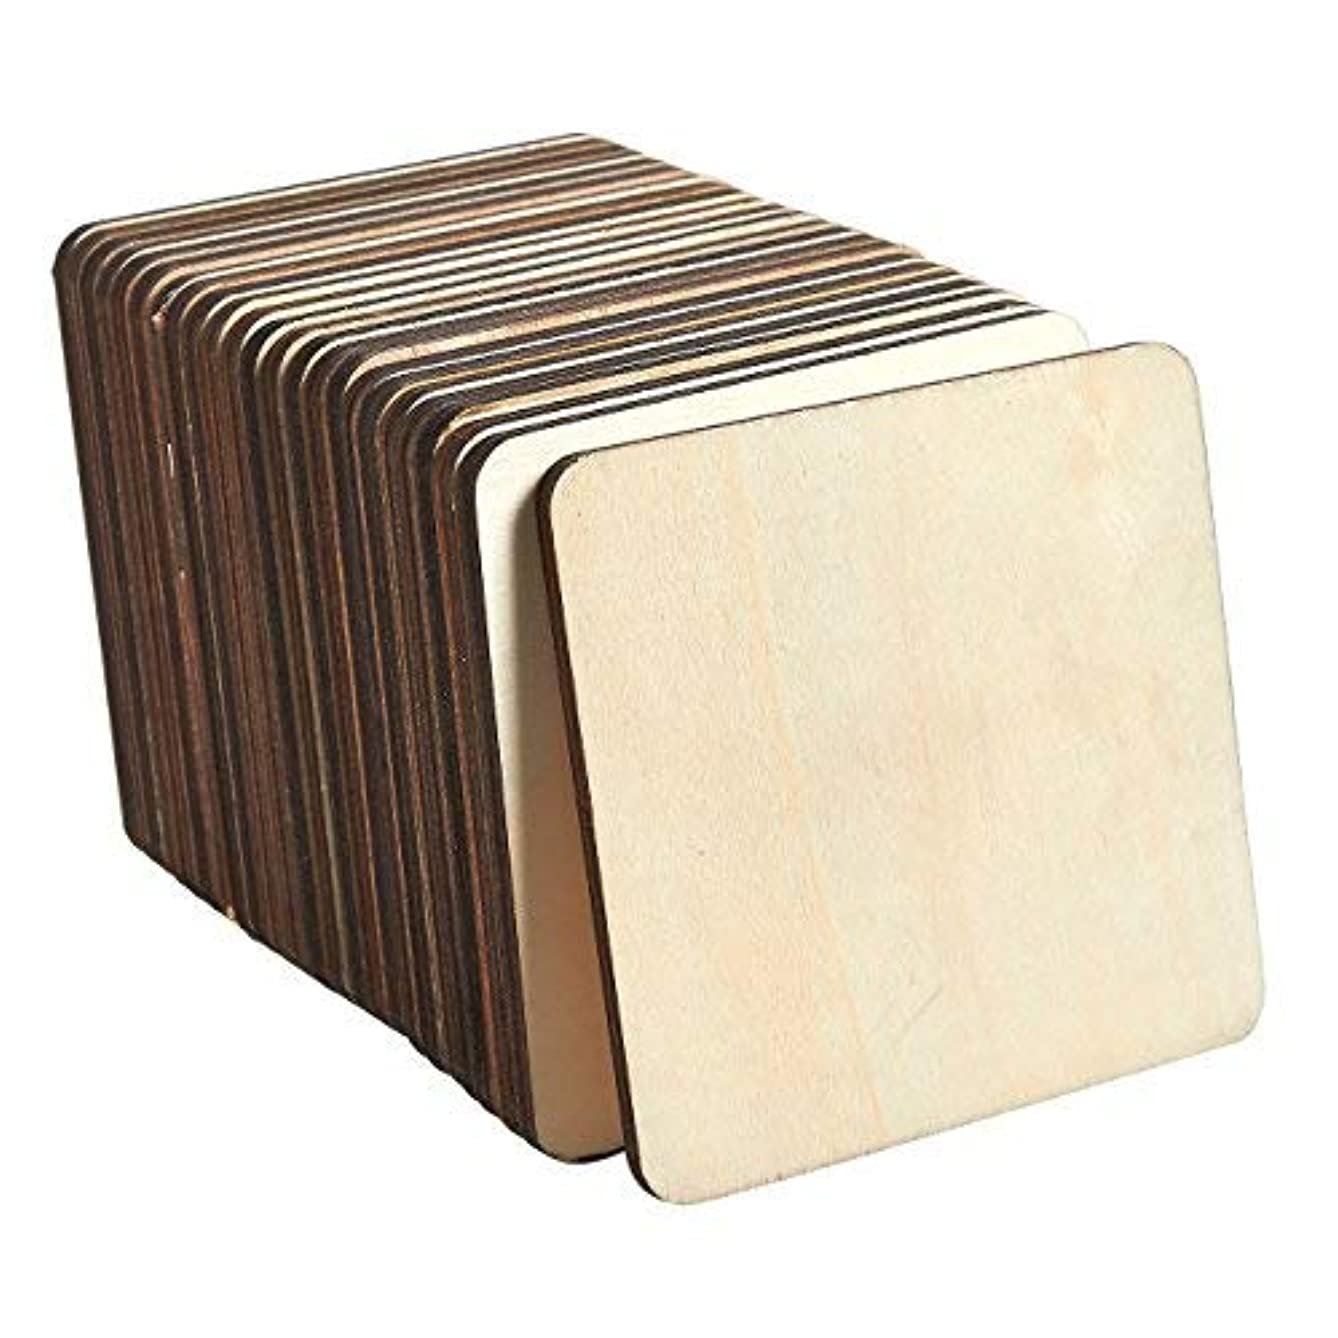 Unfinished Wood Pieces - 36-Pack Wooden Squares Cutout Tiles, Natural Rustic Craft Wood for Home Decoration, DIY Supplies, 4 x 4 inches